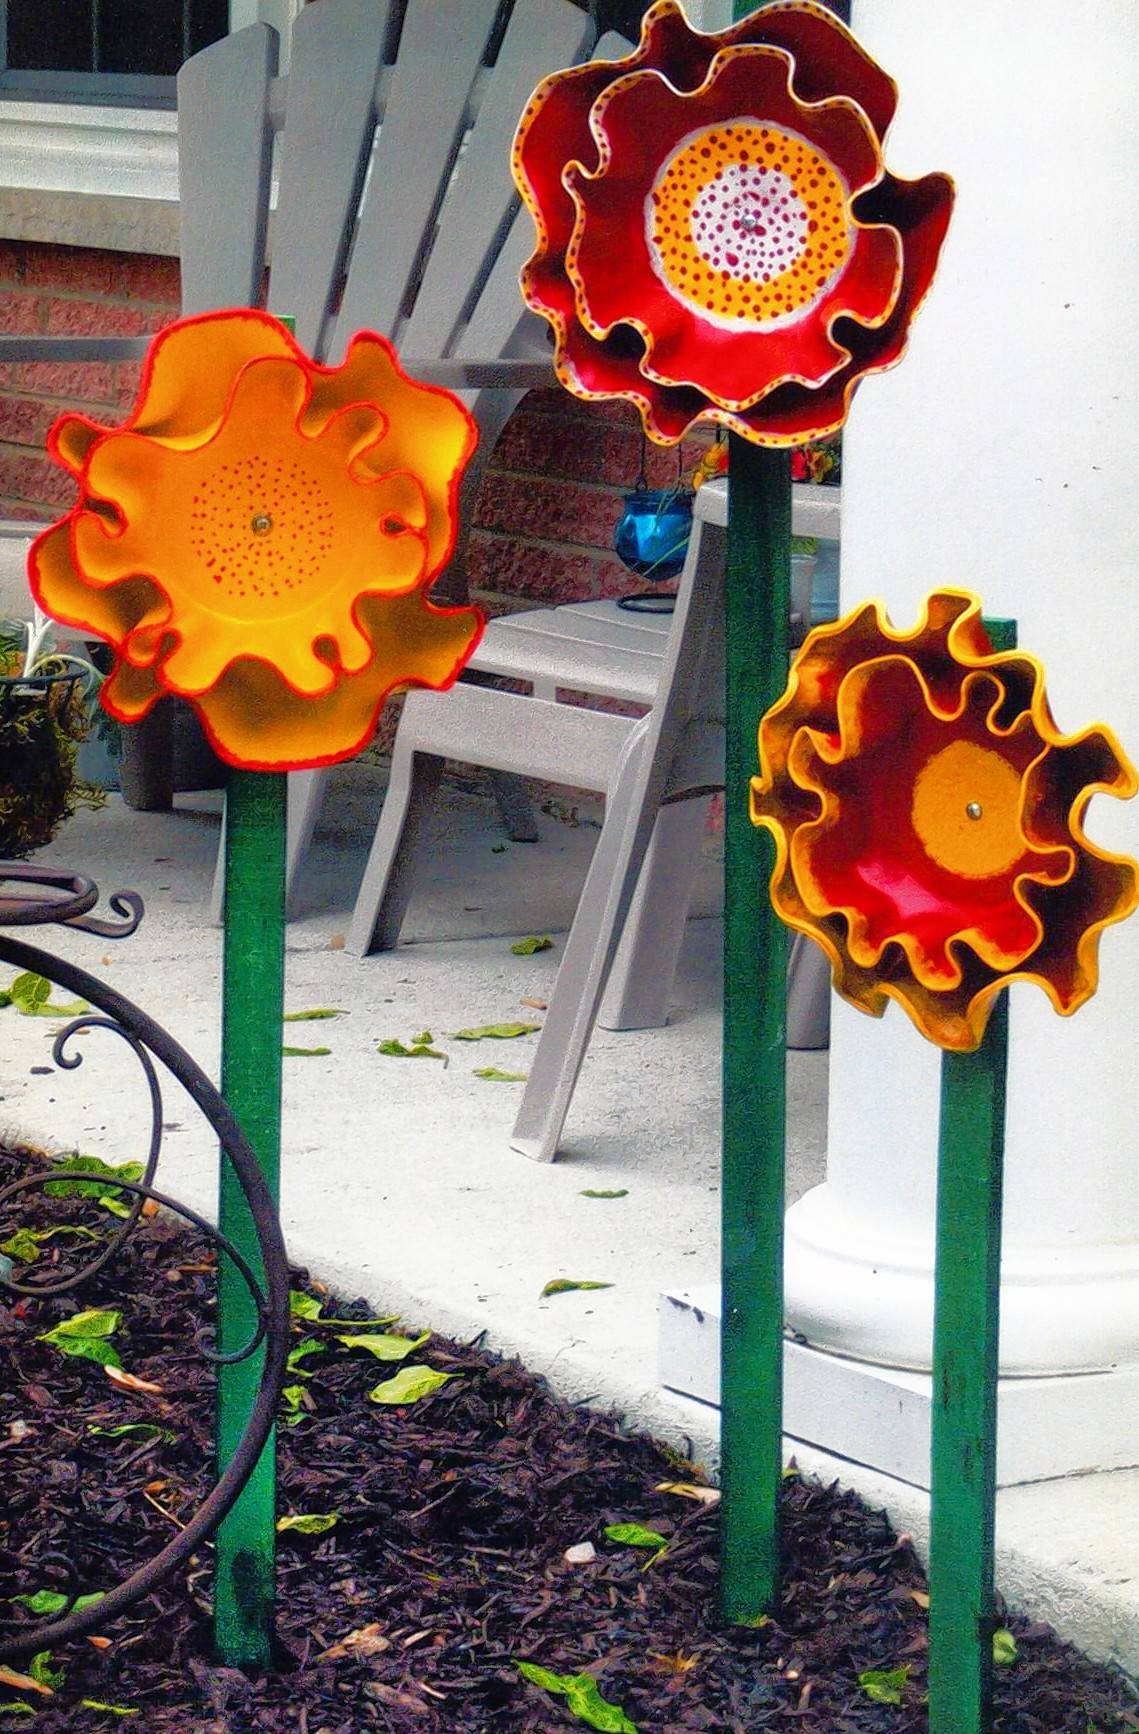 GRAND PRIZE WINNER: Josephine Perez of Arlington Heights creates her Fantasy Flowers by melting old vinyl record albums in the oven, then painting and assembling them into flowers. The flowers can be staked in a garden or flower bed, or attached to fencing or a shed. She also makes mushroom caps that can top jars nestled in the dirt.